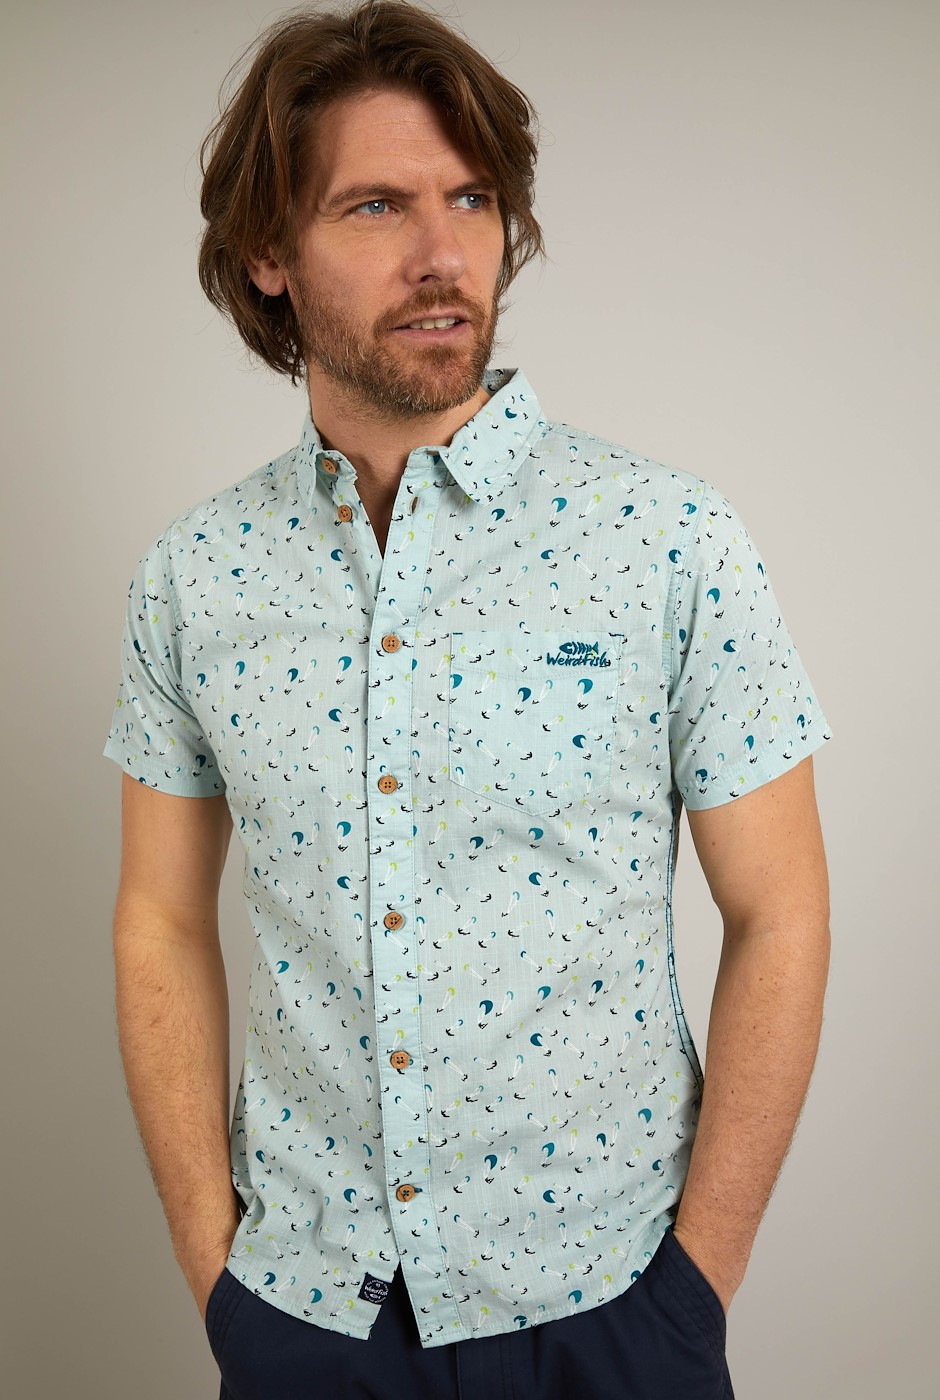 Gillespie Organic Cotton Printed Shirt Aqua